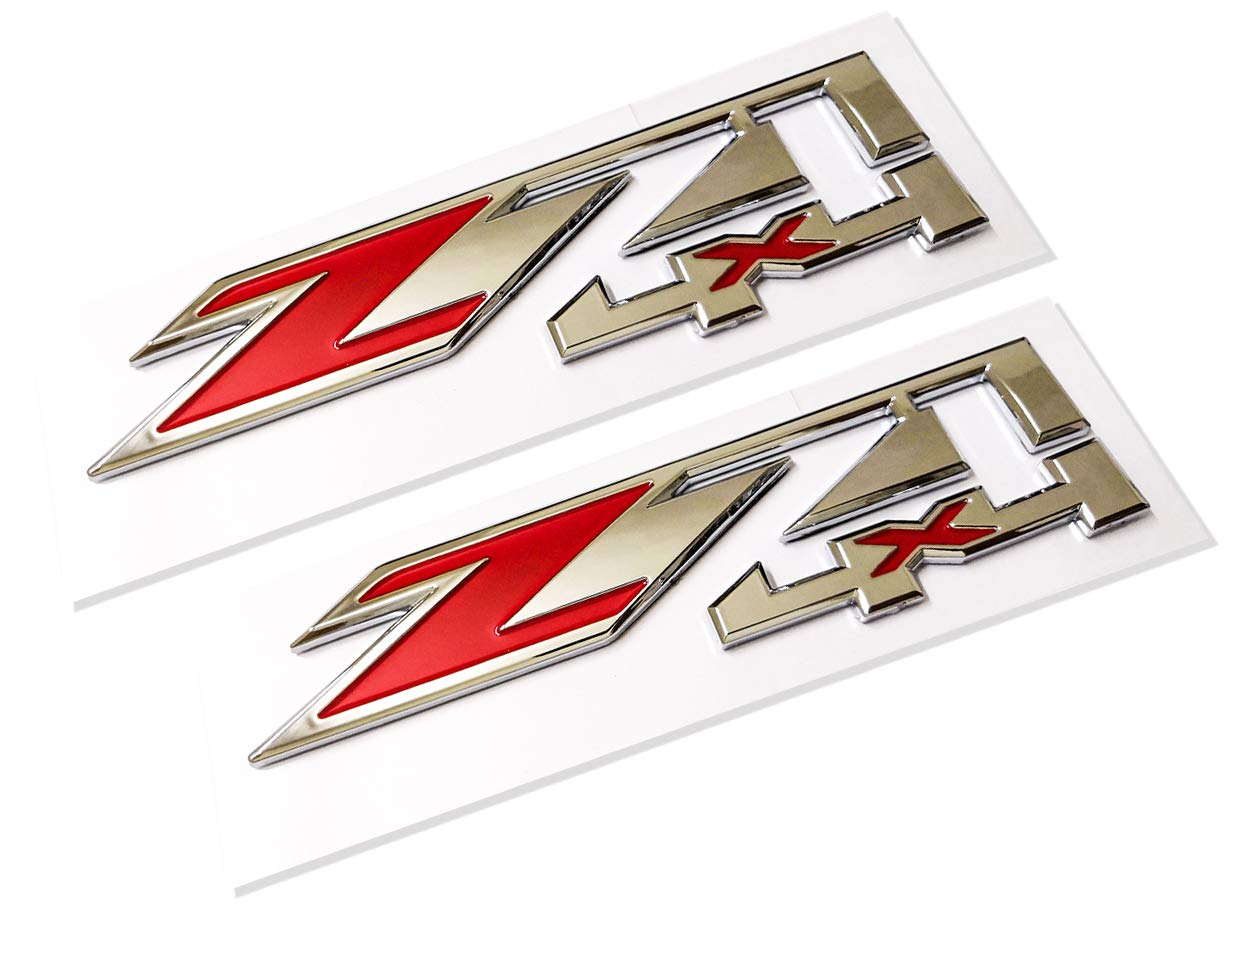 2pcs Z71 OFF Road Decals Emblems Badge 3D Replacement for GMC Chevy Silverado 1500 2500HD Sierra Suburban Colorado Chrome Red Emzscar